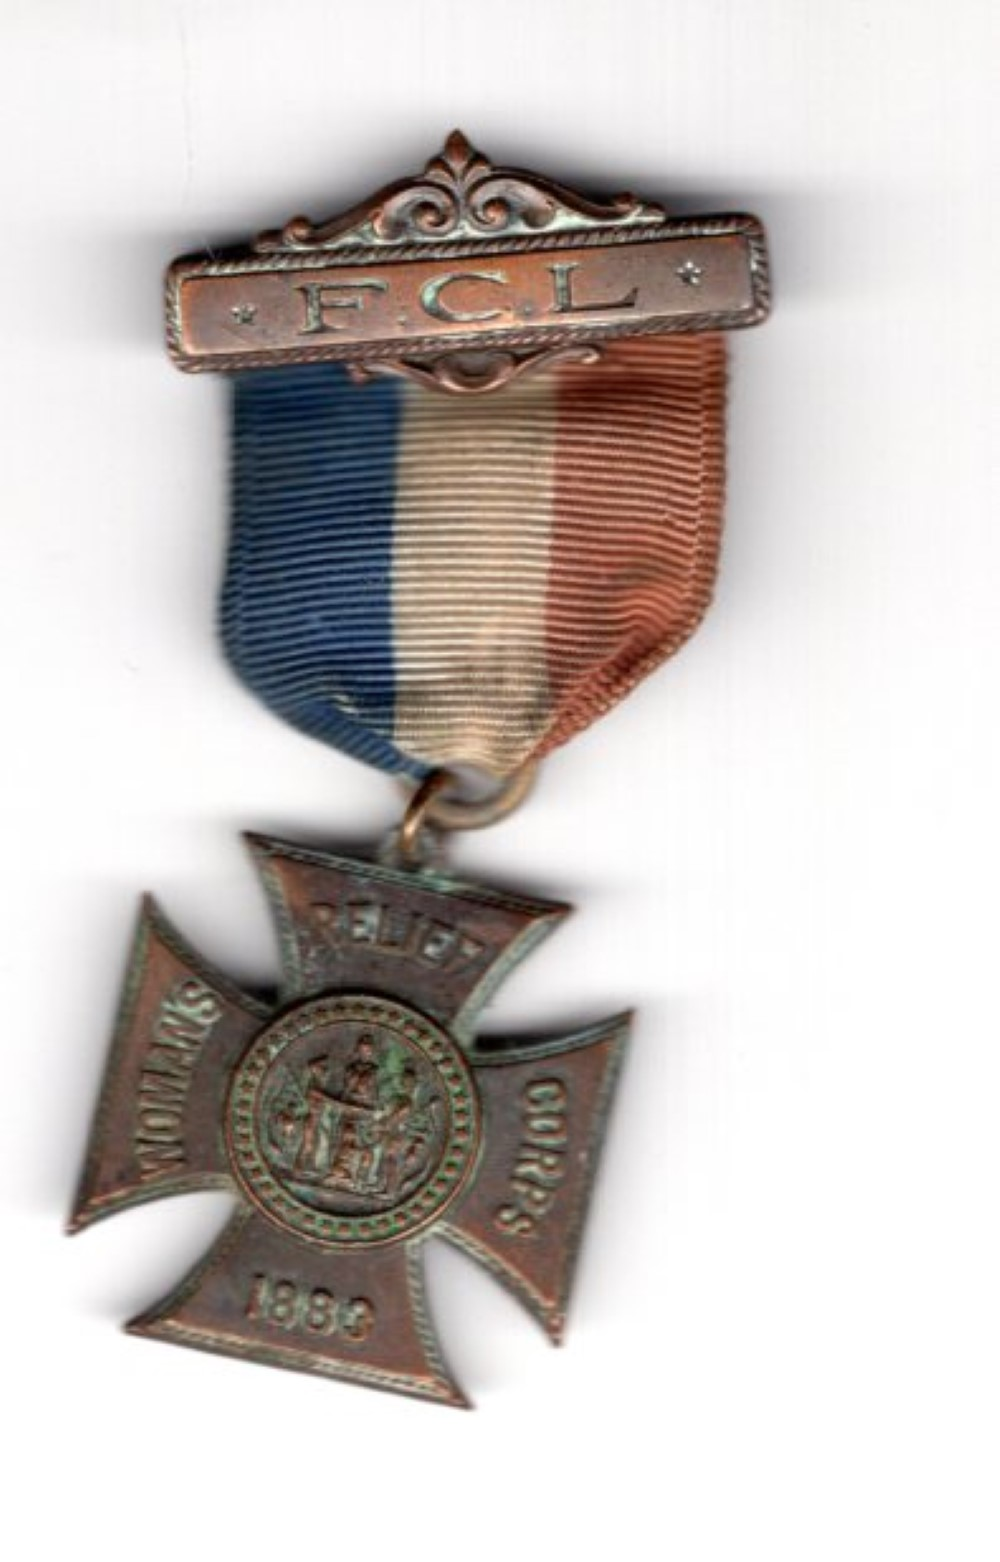 Women's Relief Corps medal